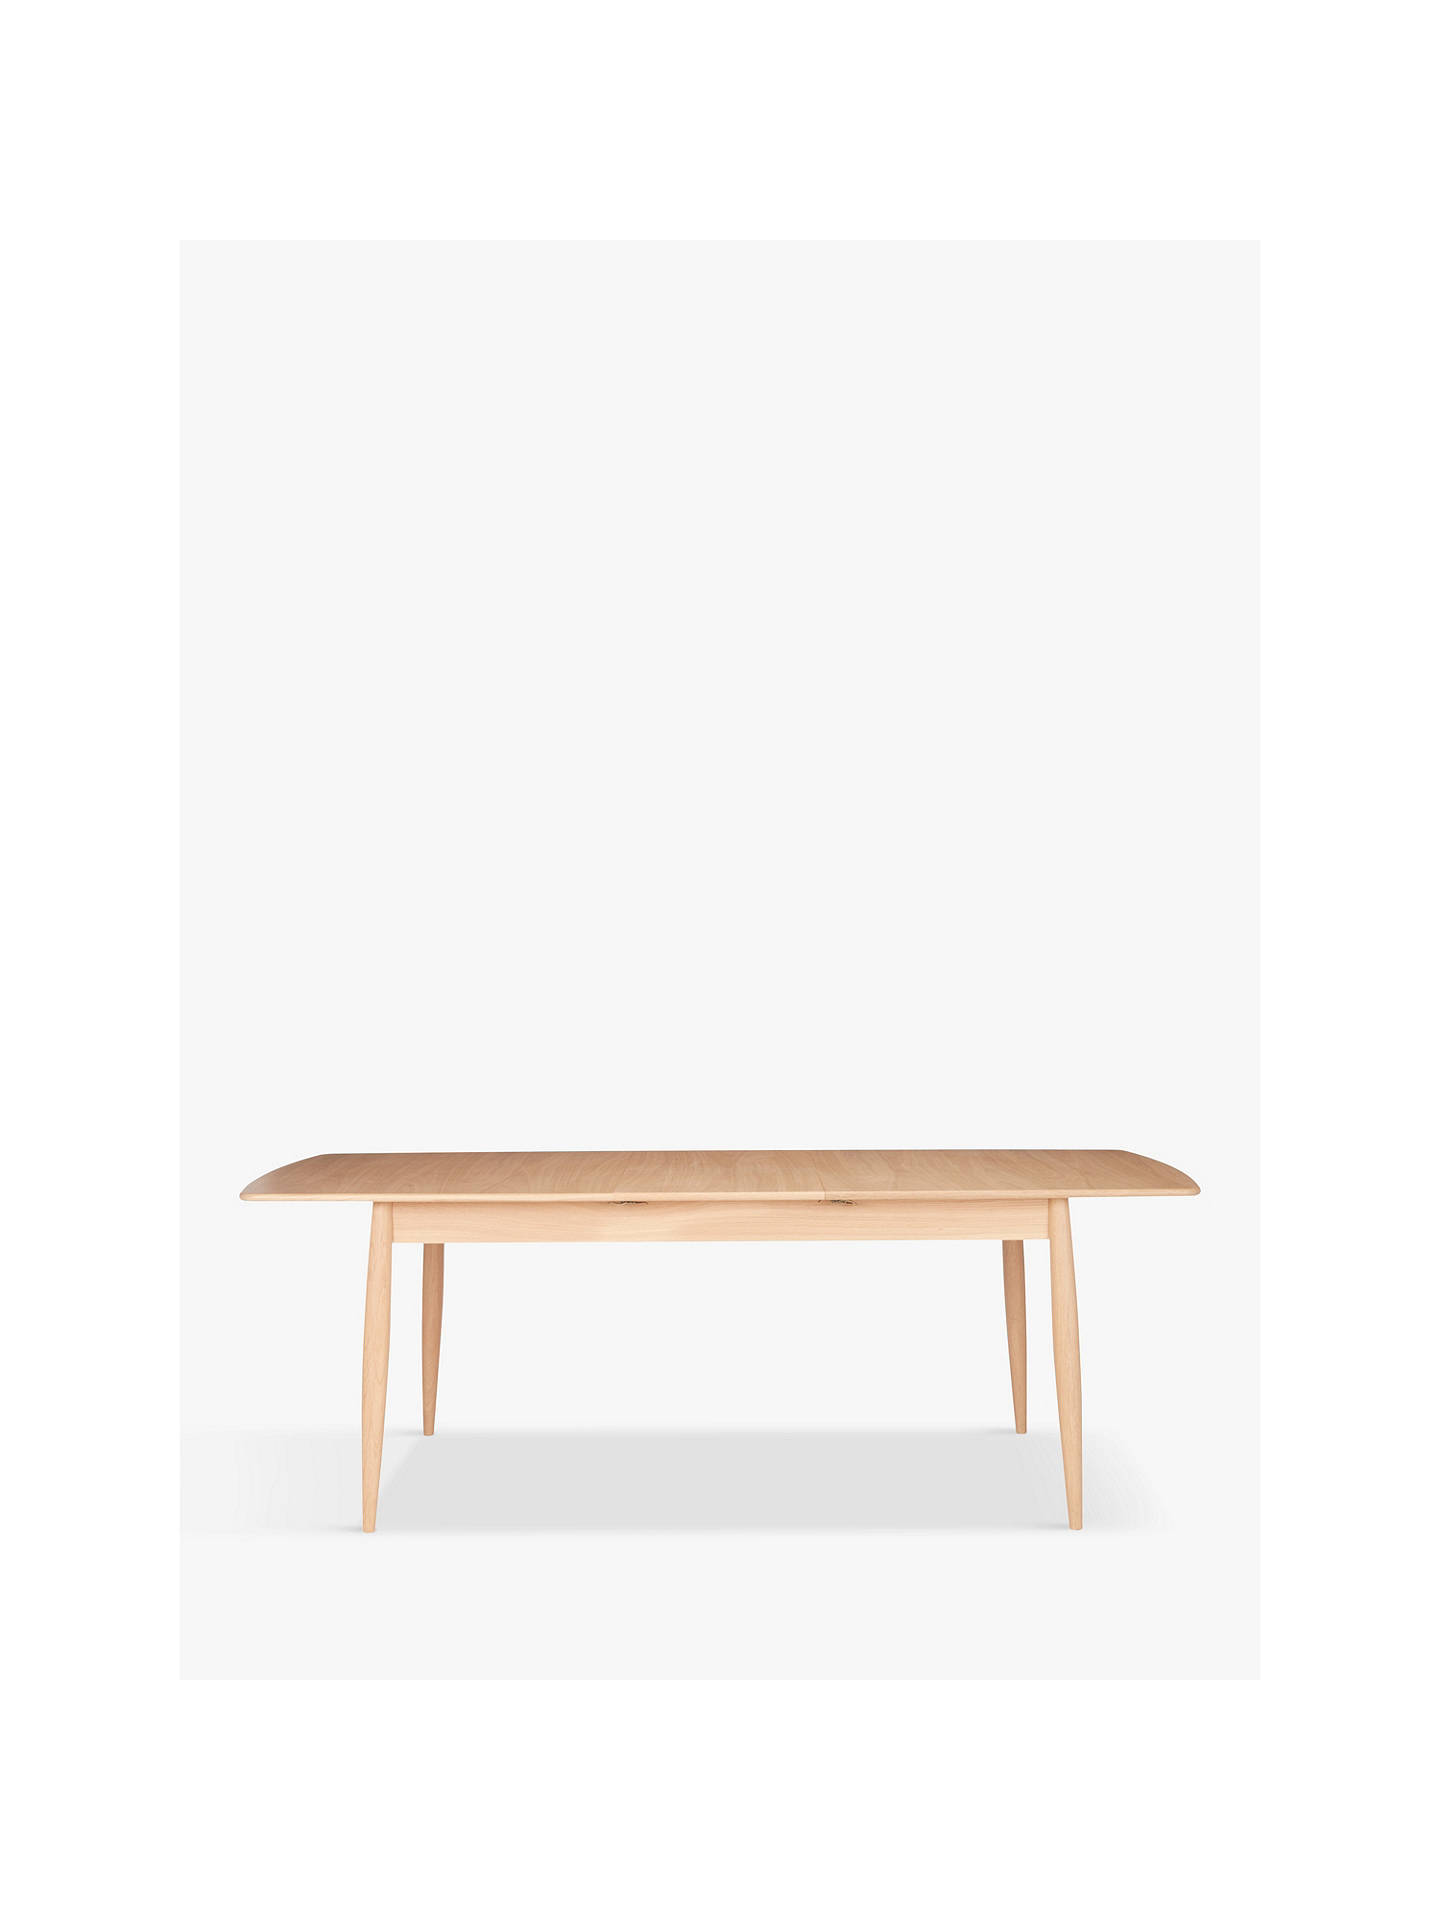 Buy ercol for John Lewis Shalstone 6-8 Seater Extending Dining Table, Oak Online at johnlewis.com